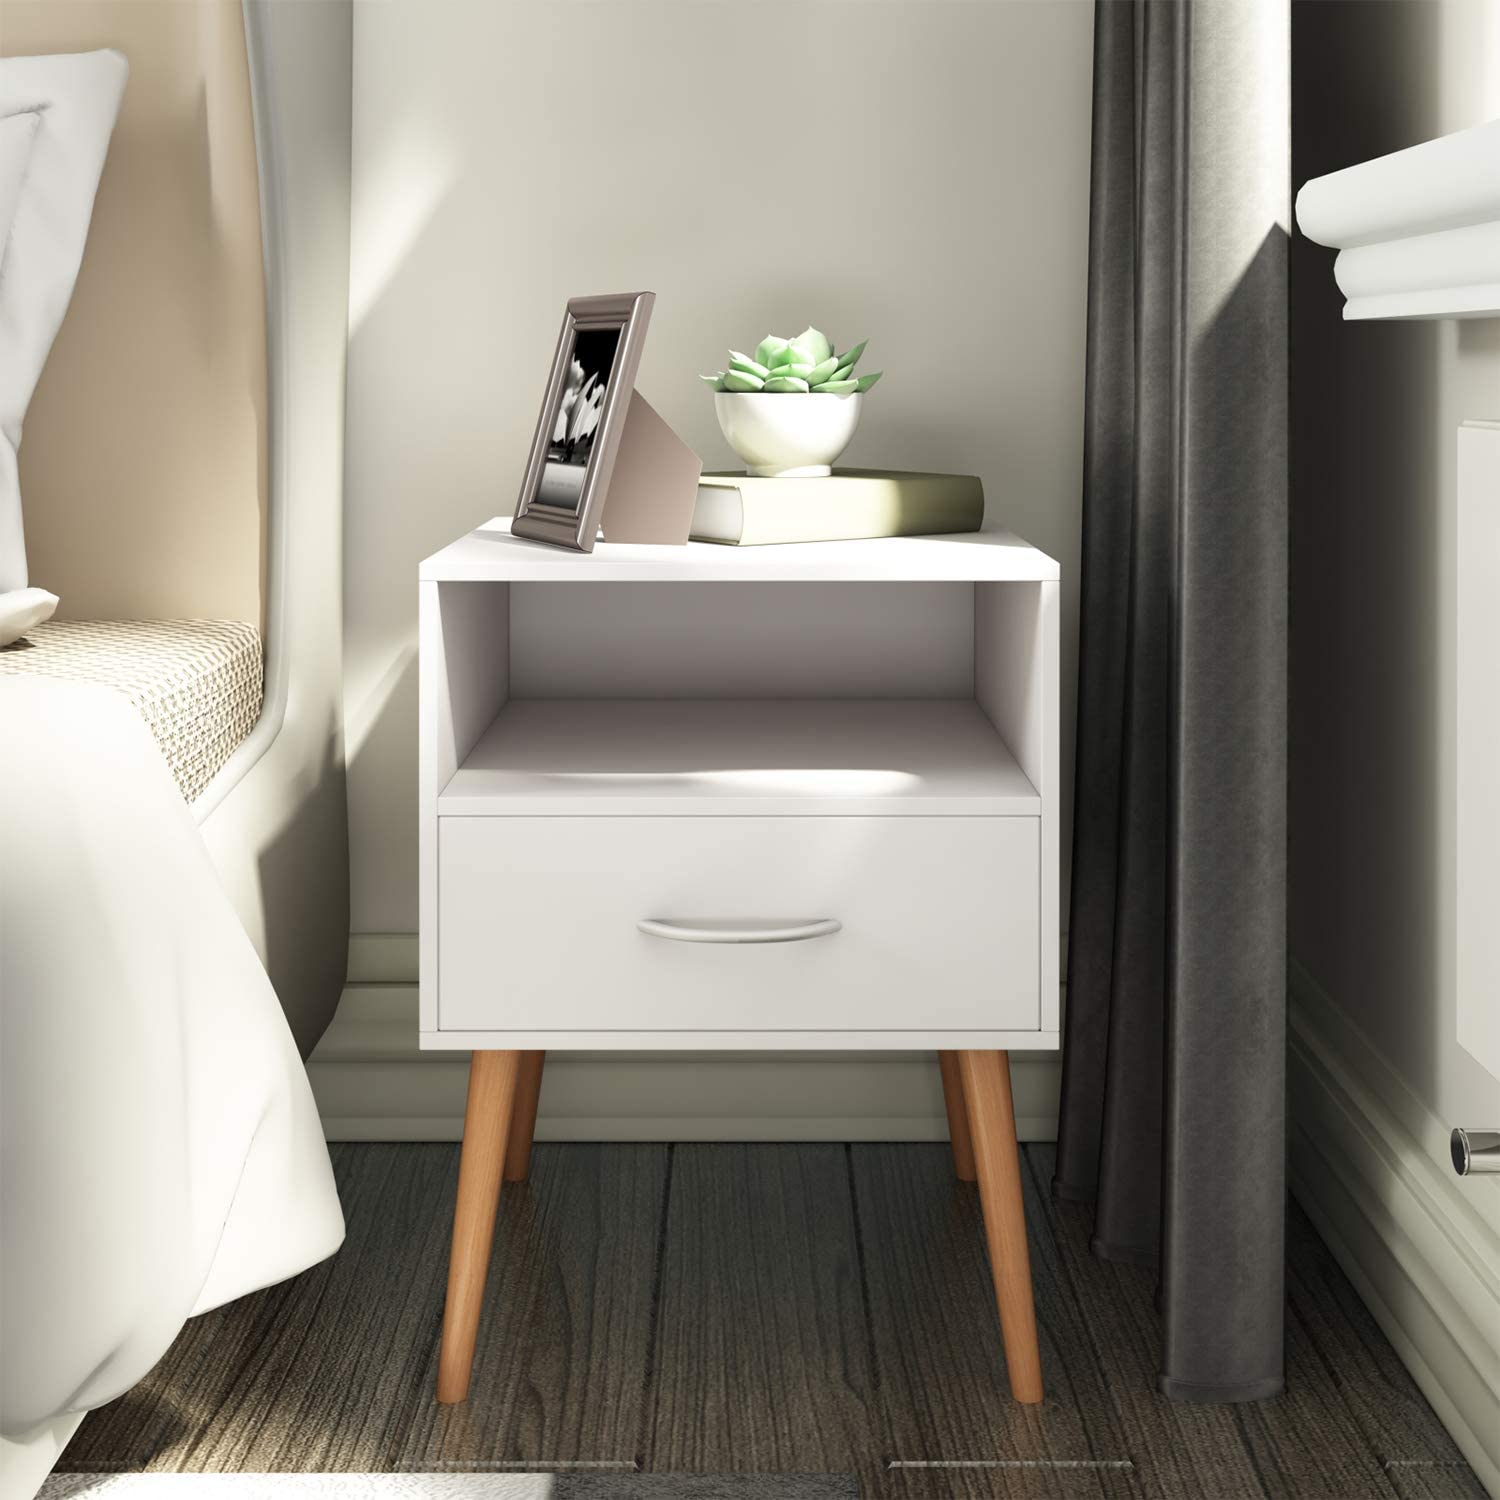 Joolihome White Wooden Bedside Table With Drawers&Silver Handle  Scandinavian Style 5 Tier Bedside Cabinet End Table Side Table Nightstand  Bedroom